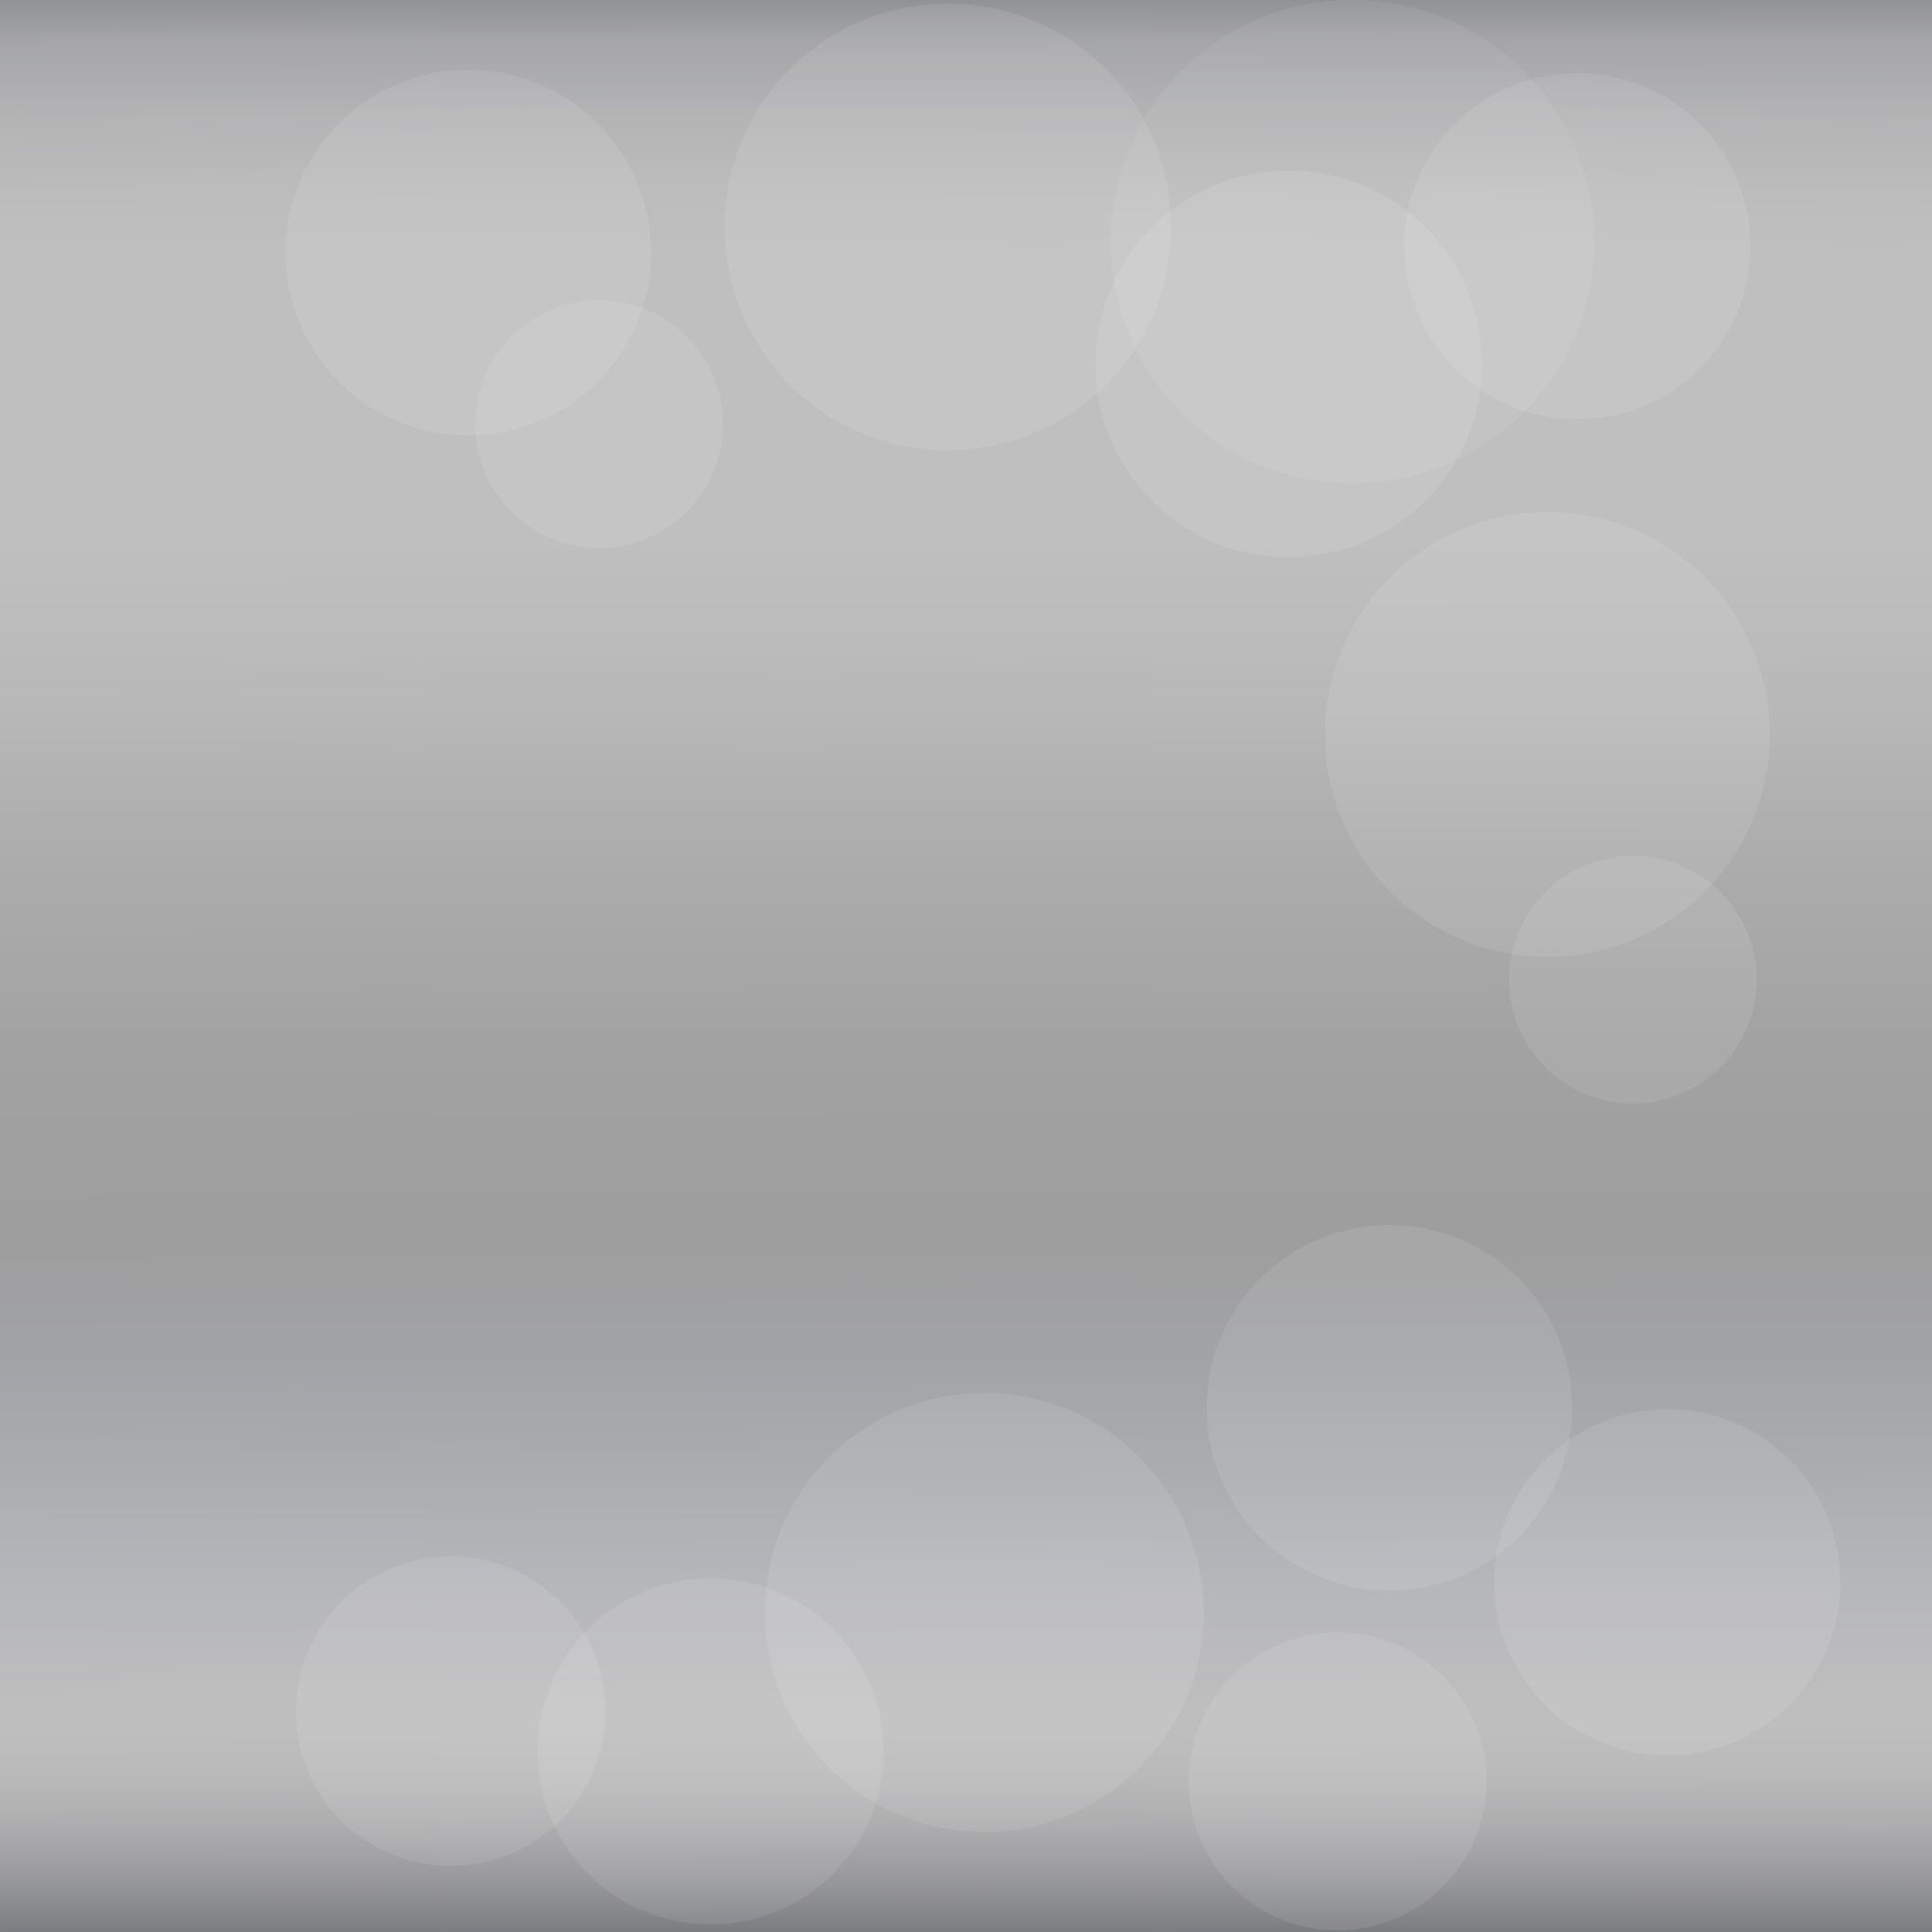 Blurred silver effect holographic gradient background example image 12